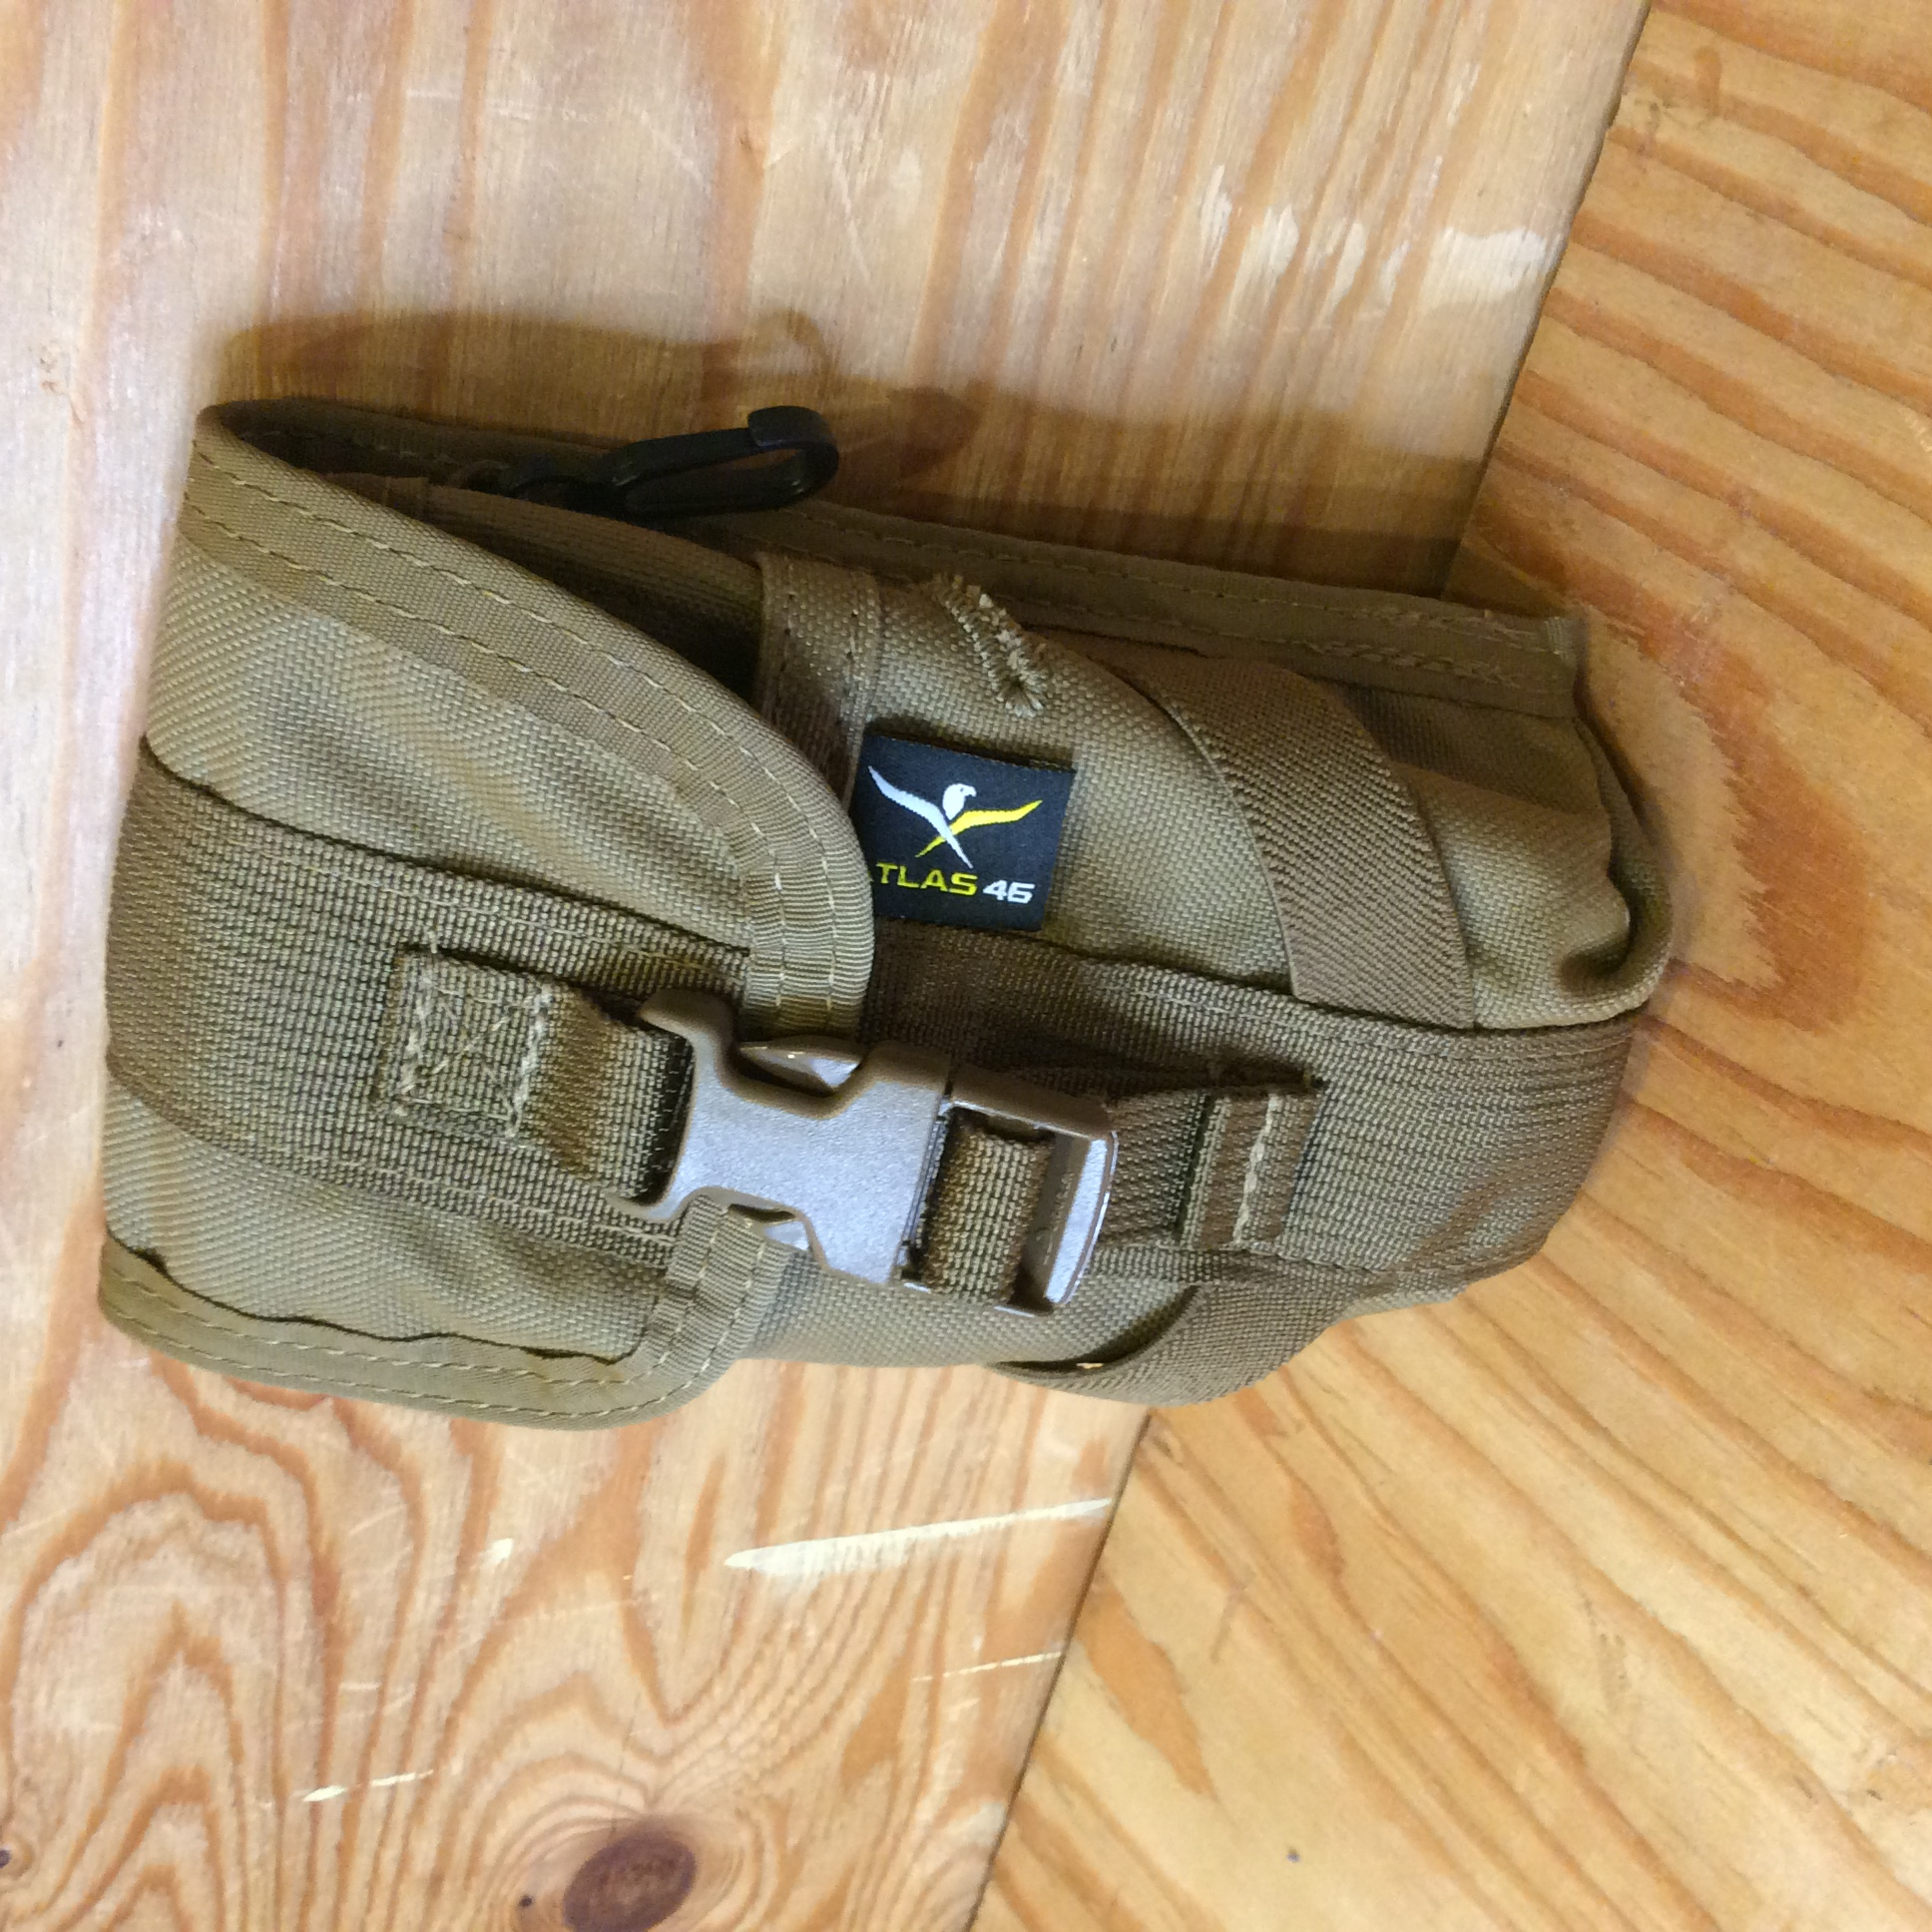 ATLAS46 AIMS™ Flapped Mobile Phone Pouch v2